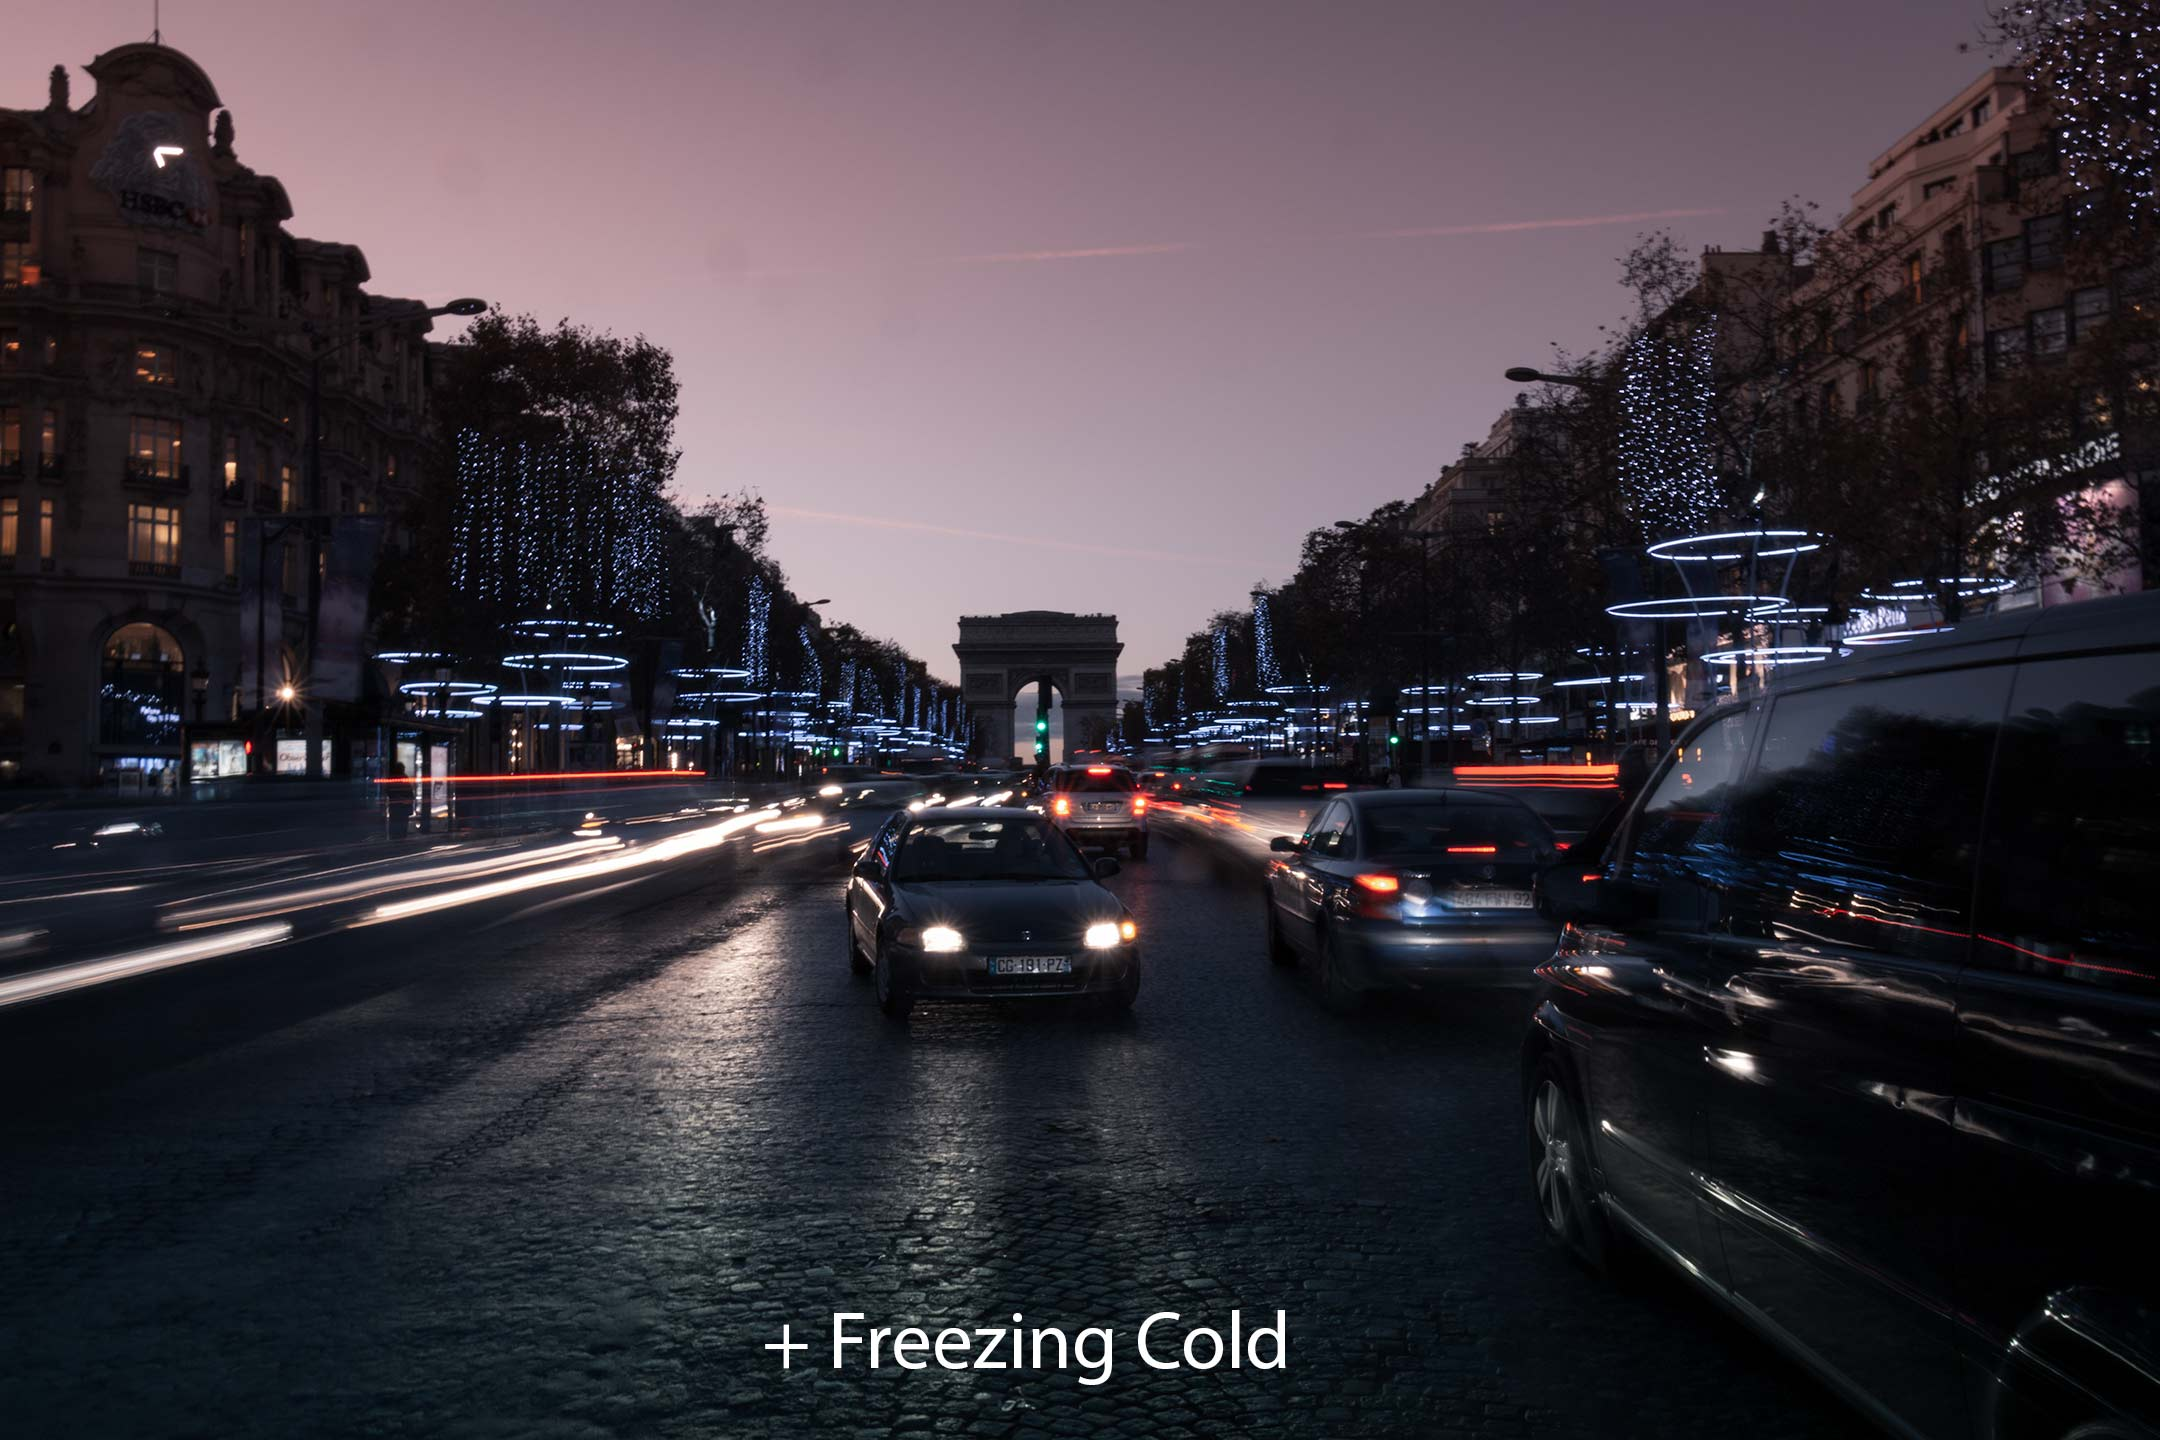 Freezing Cold 1.jpg